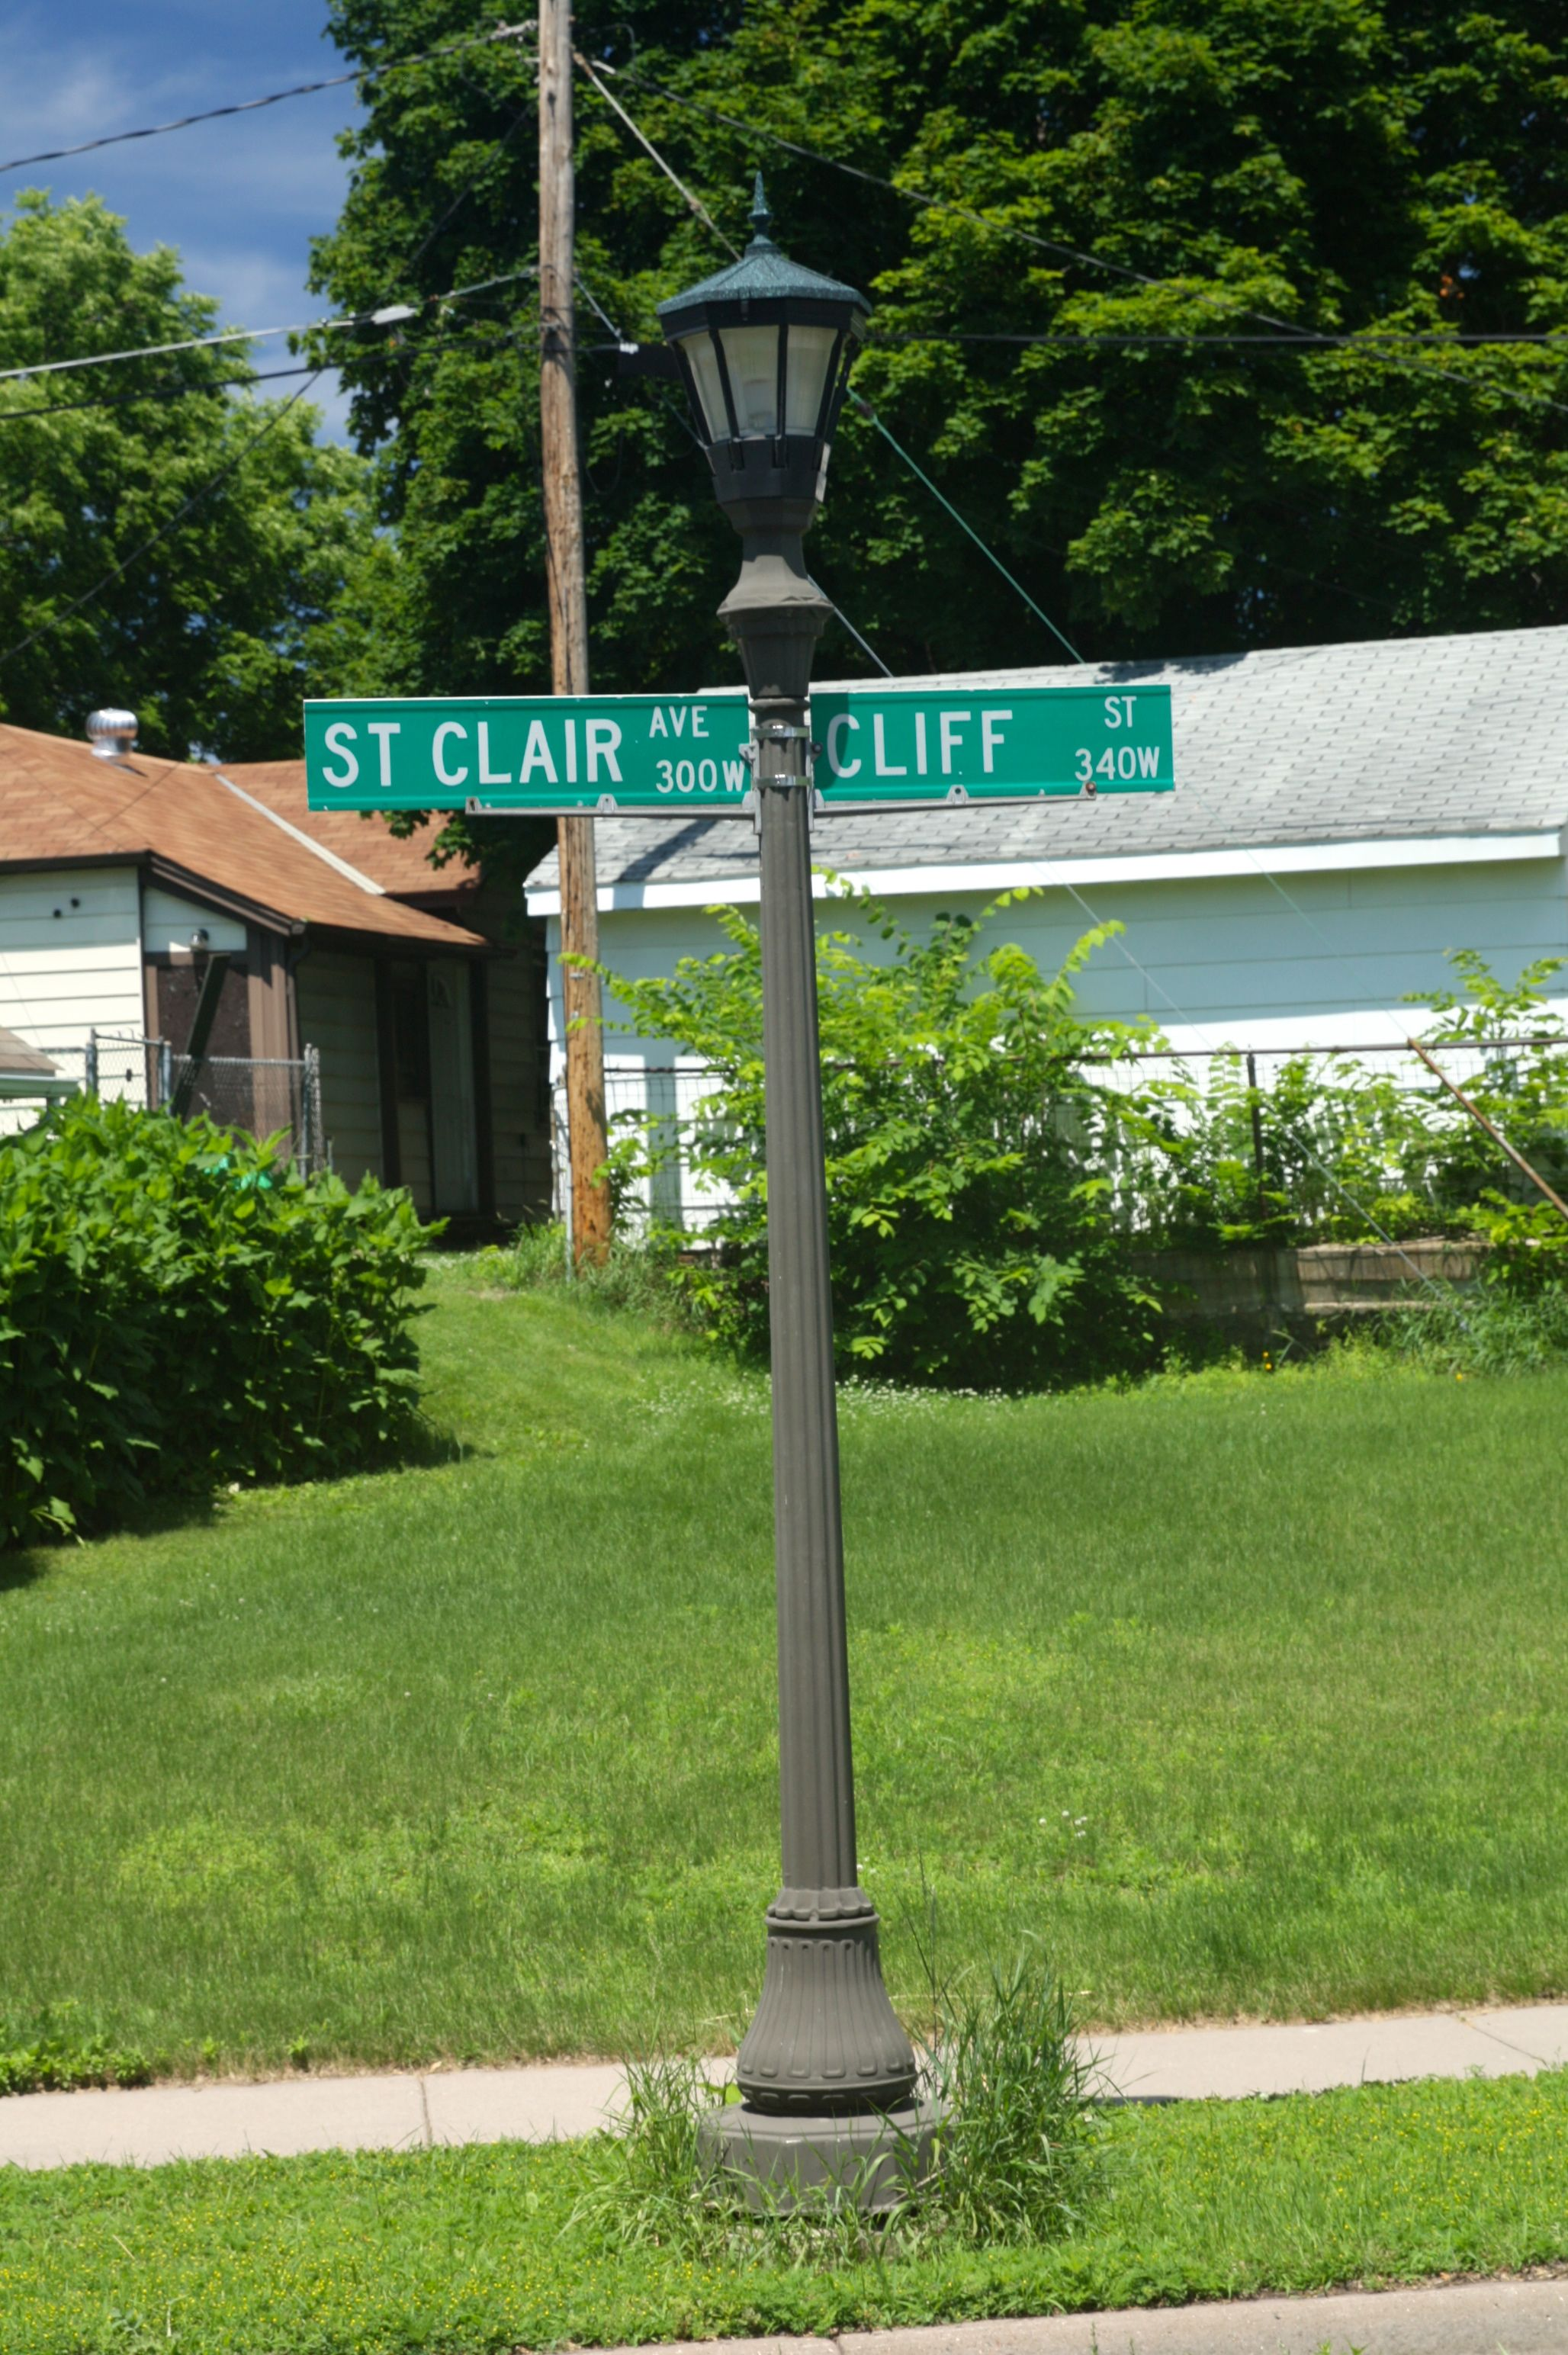 The street changes in absolutely no observable way, but St. Clair Avenue becomes Cliff Street. Even the address numbers continue uninterrupted.